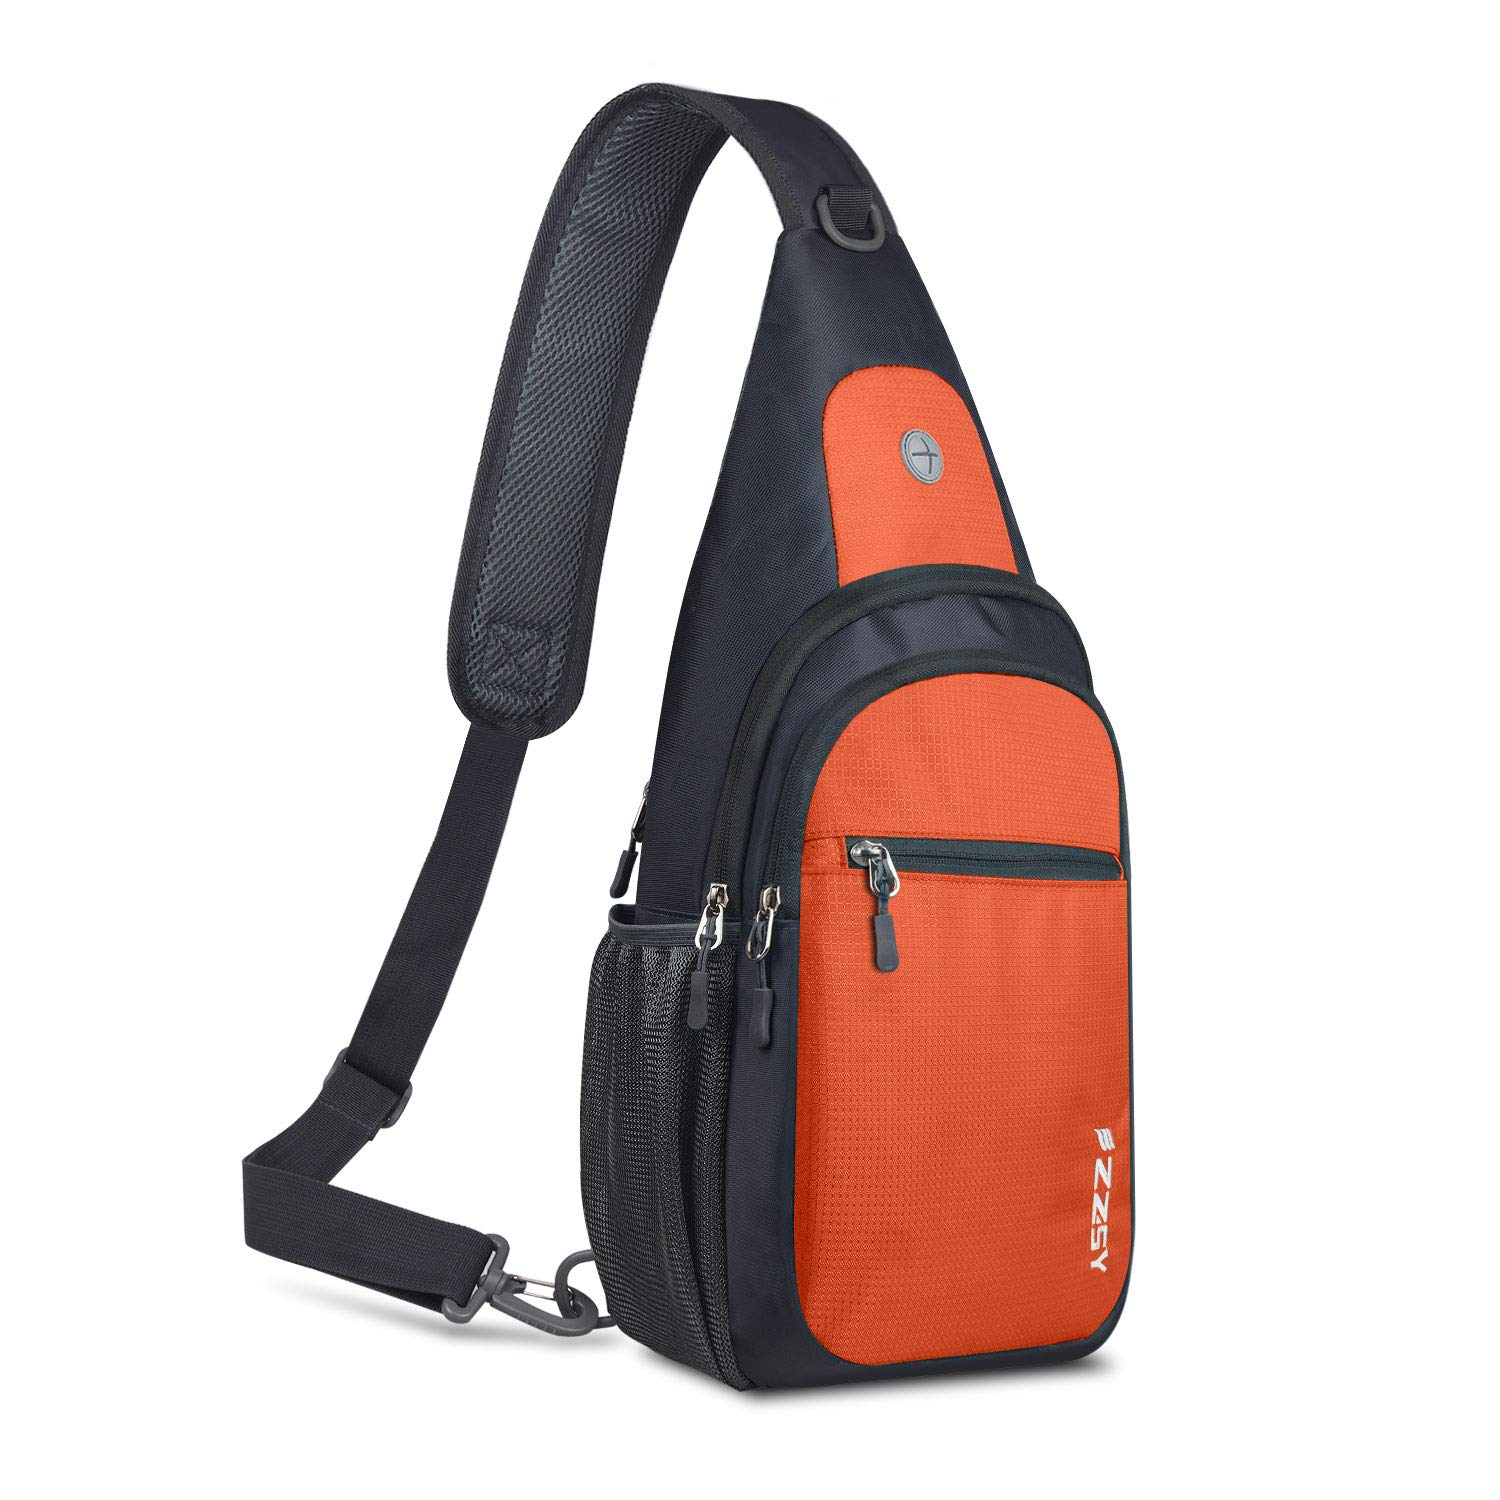 9f9821a4ab93 ZZSY Sling Backpack